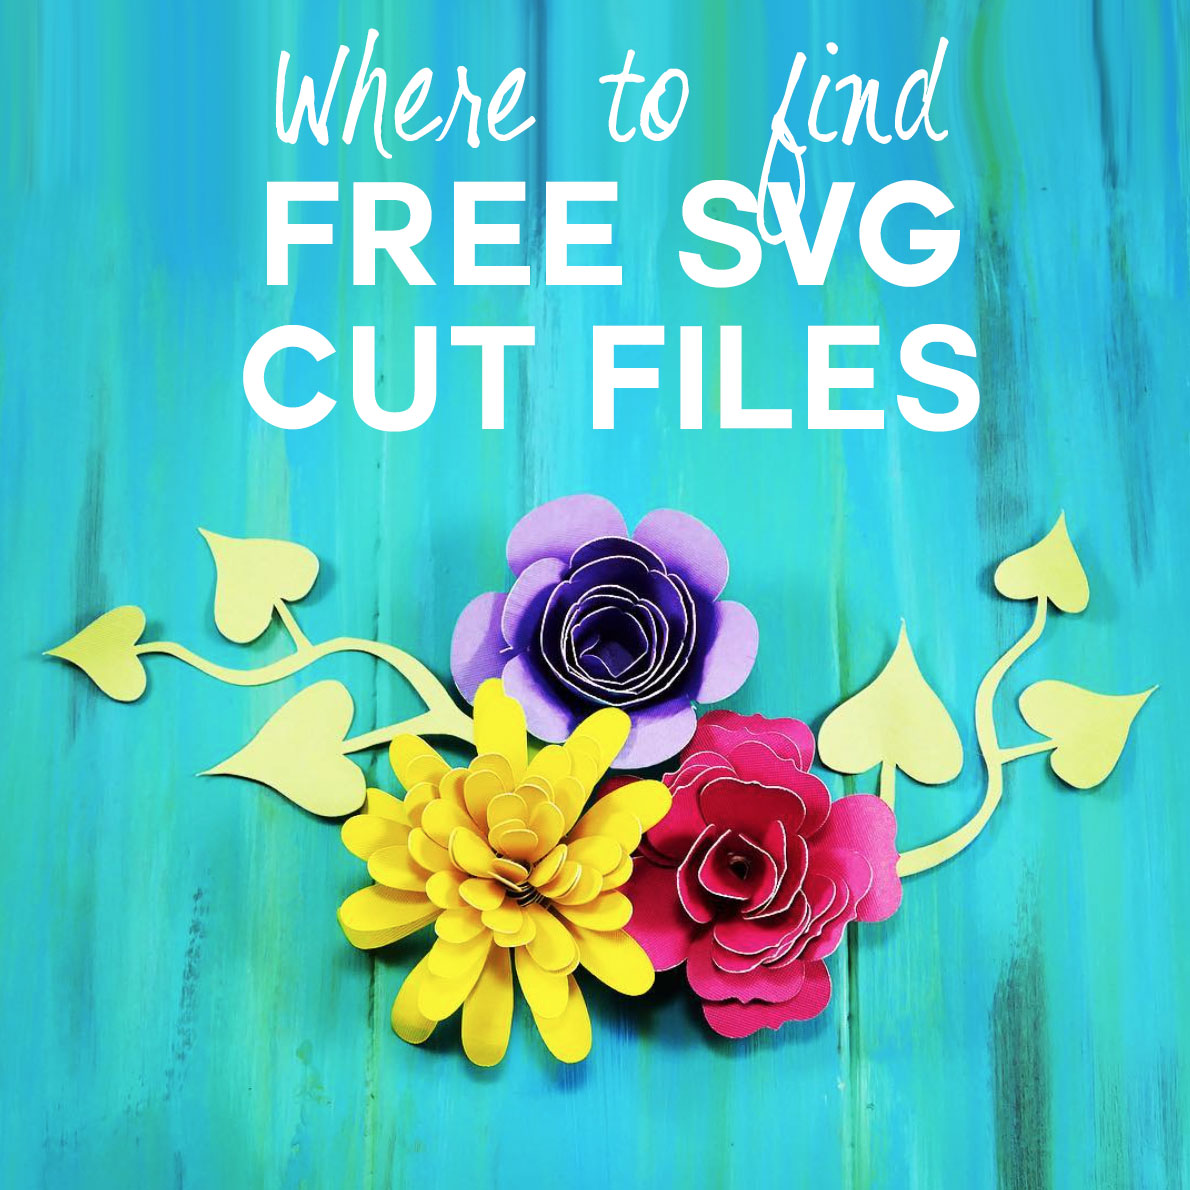 Free Svg Cut Files Where To Find The Best Designs Jennifer Maker